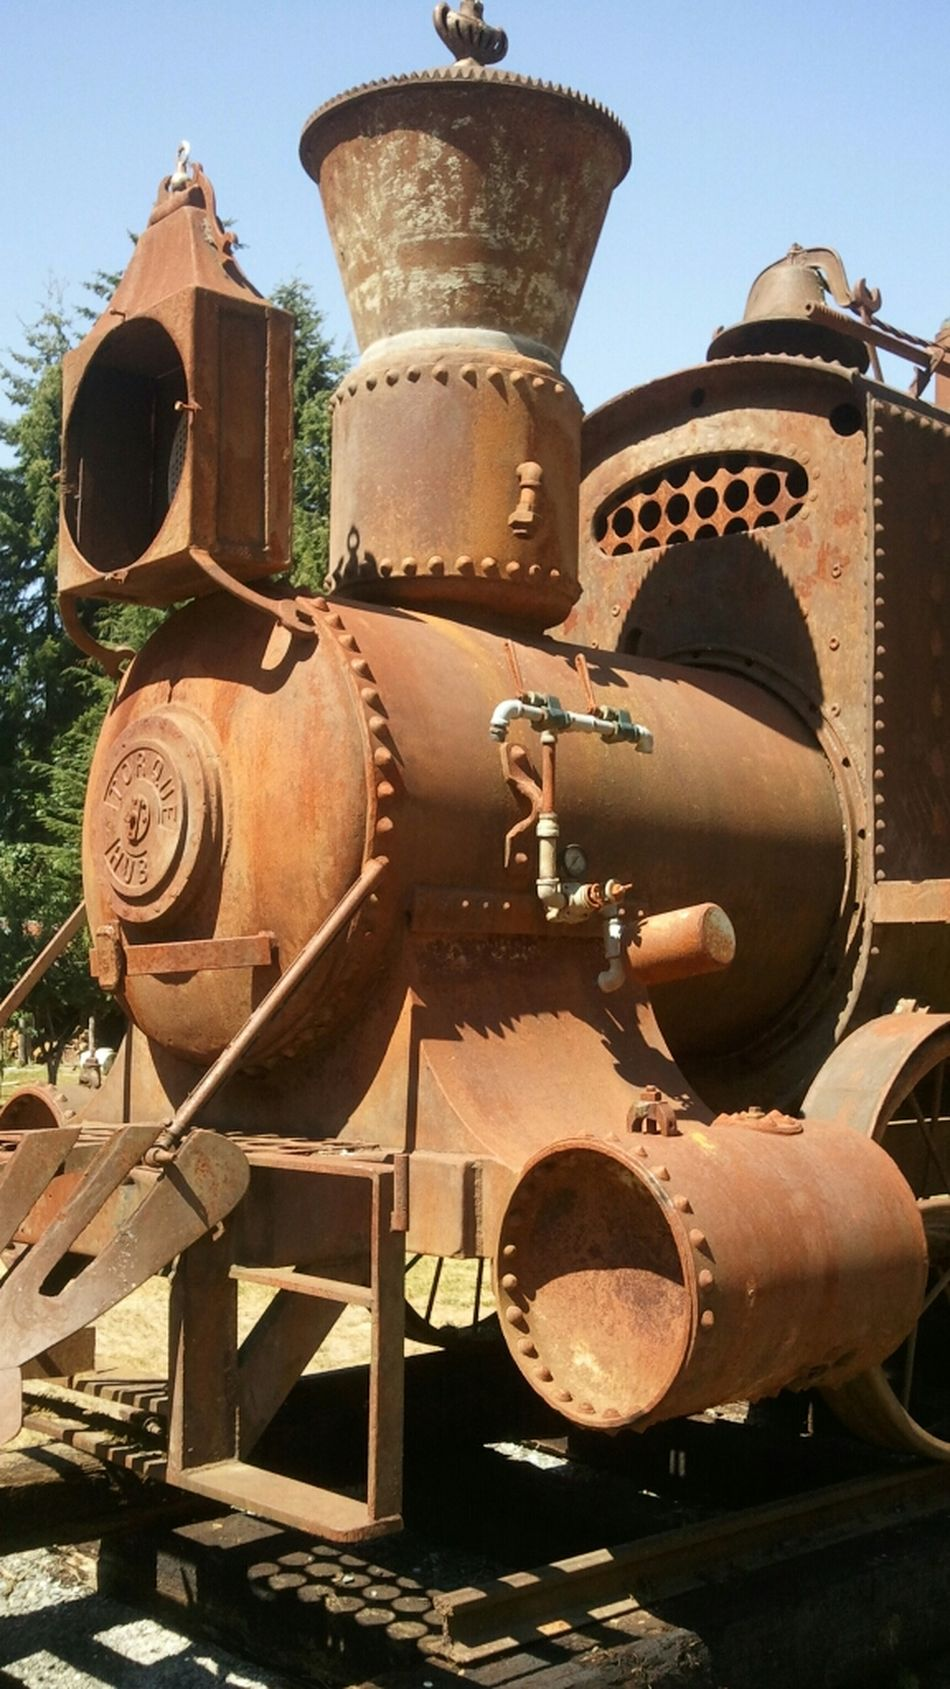 Trains Grills Railroaded The Art Of Decay